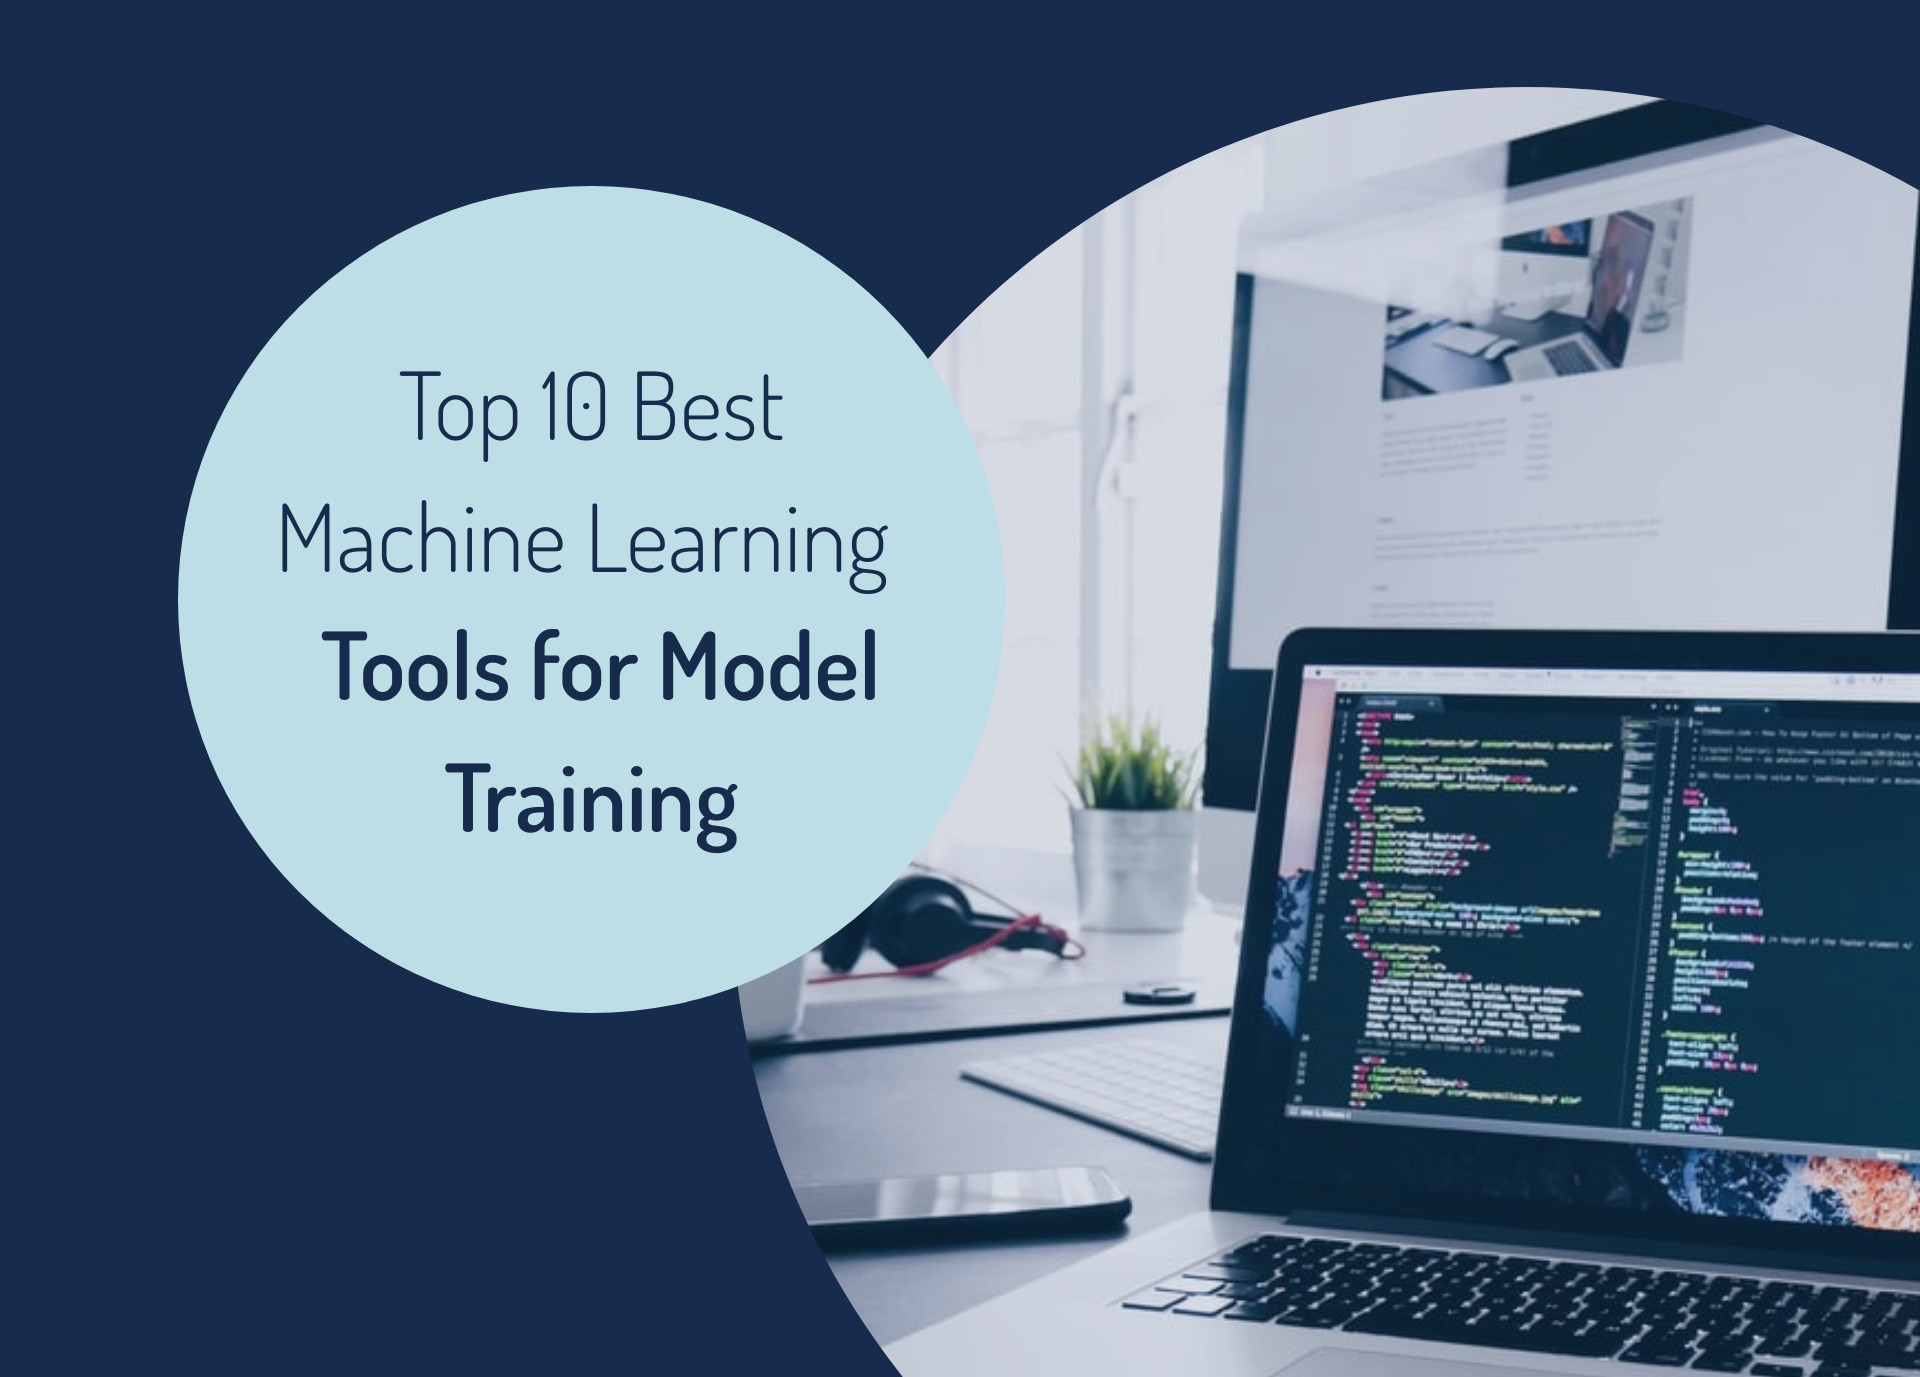 Top 10 Best Machine Learning Tools for Model Training